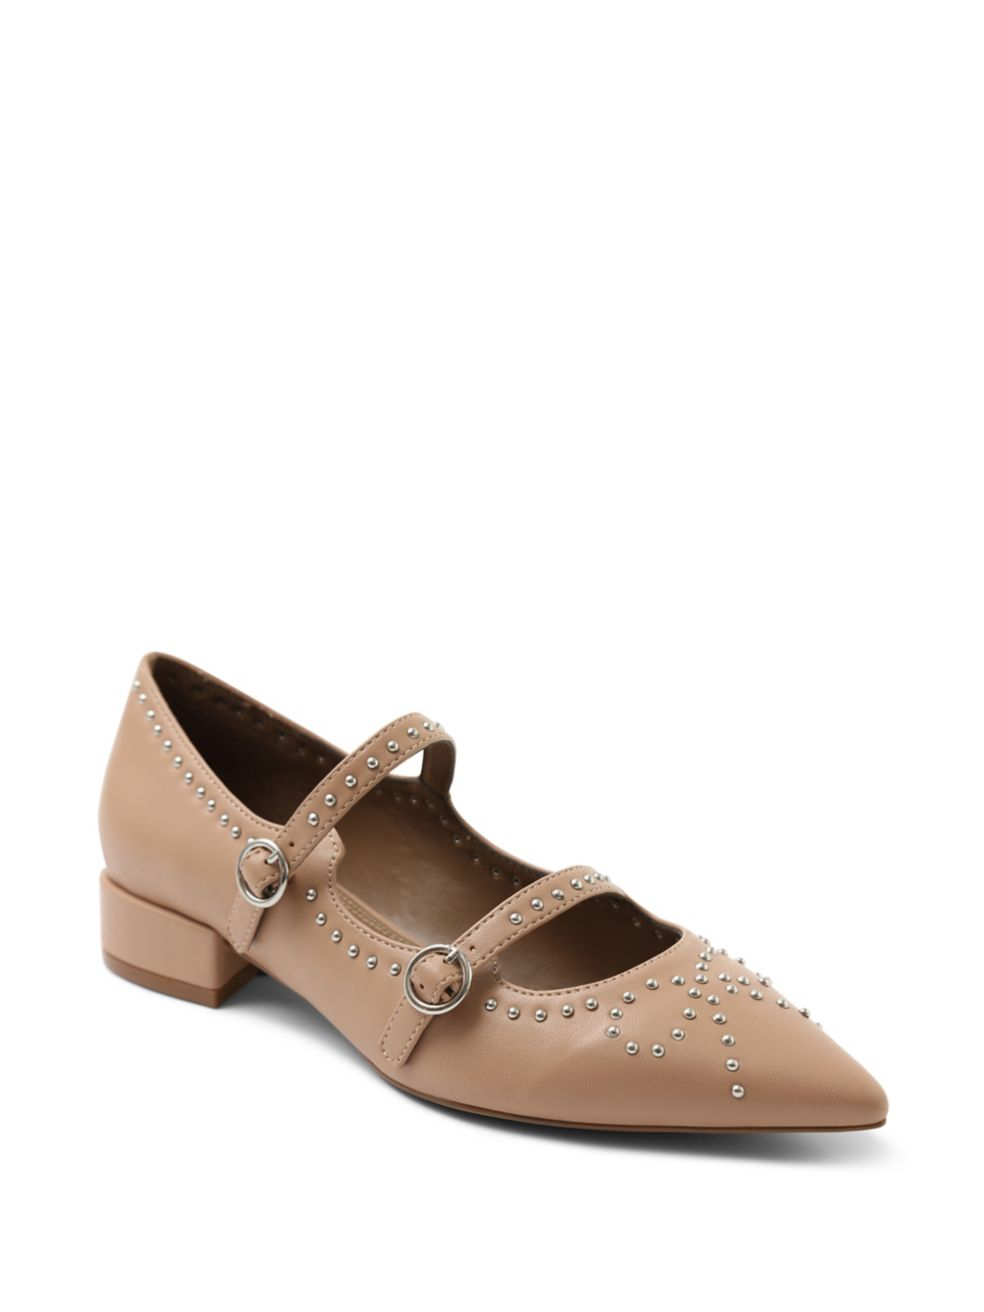 Nasser Studded Vegan Leather Pumps - $79 | $47.40 on sale, Kensie.